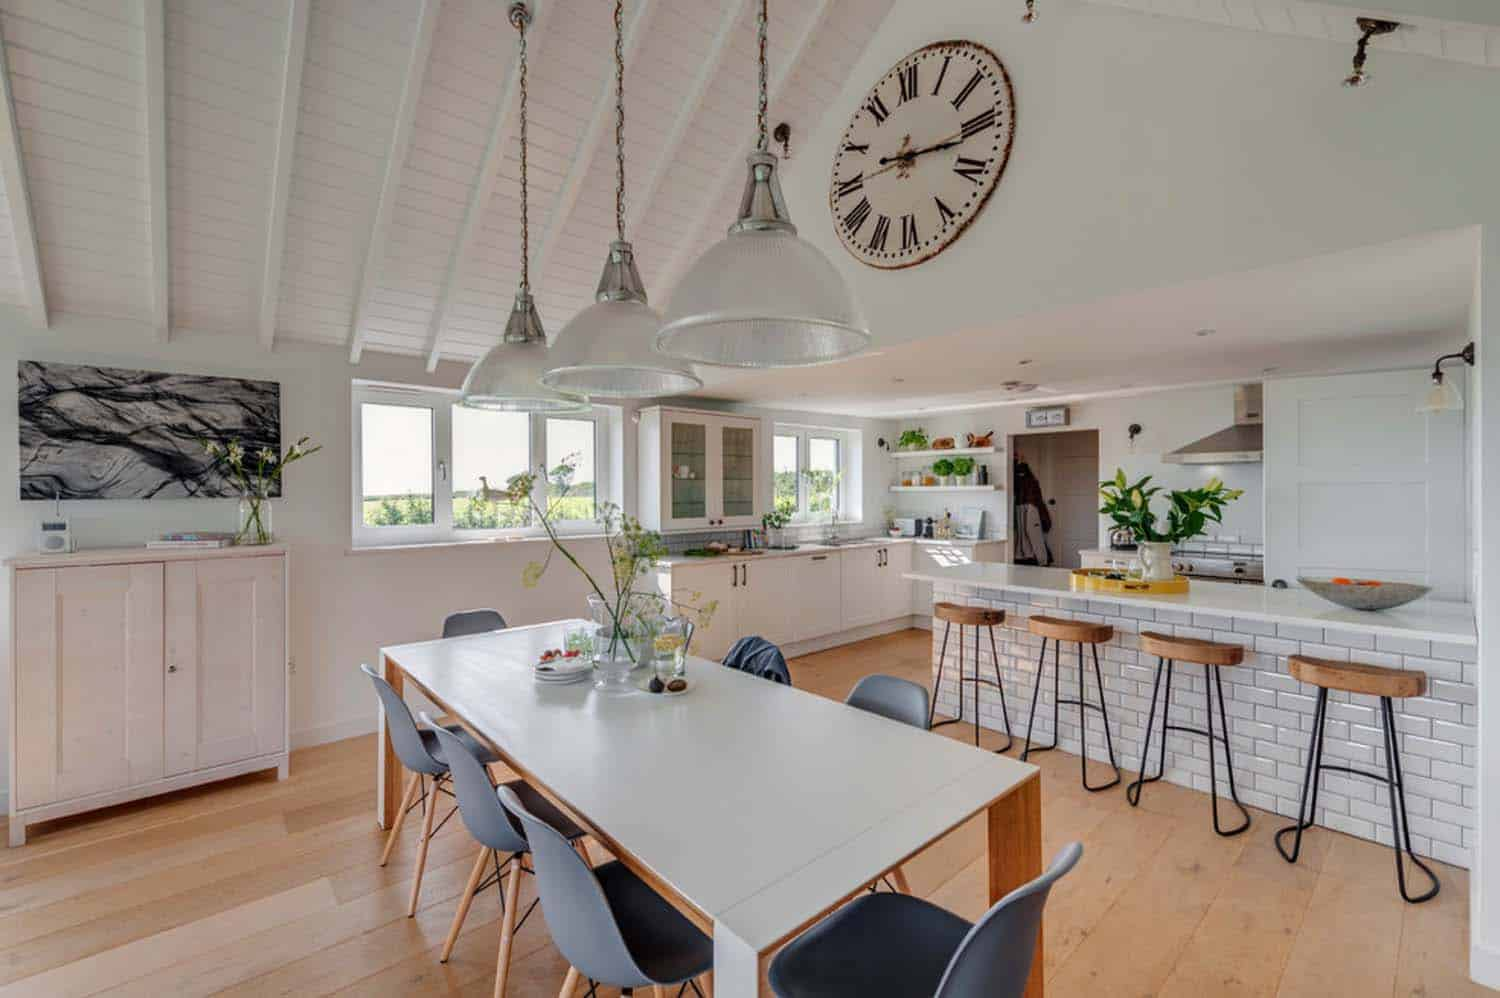 seaside-bungalow-renovation-woodford-architecture-08-1-kindesign